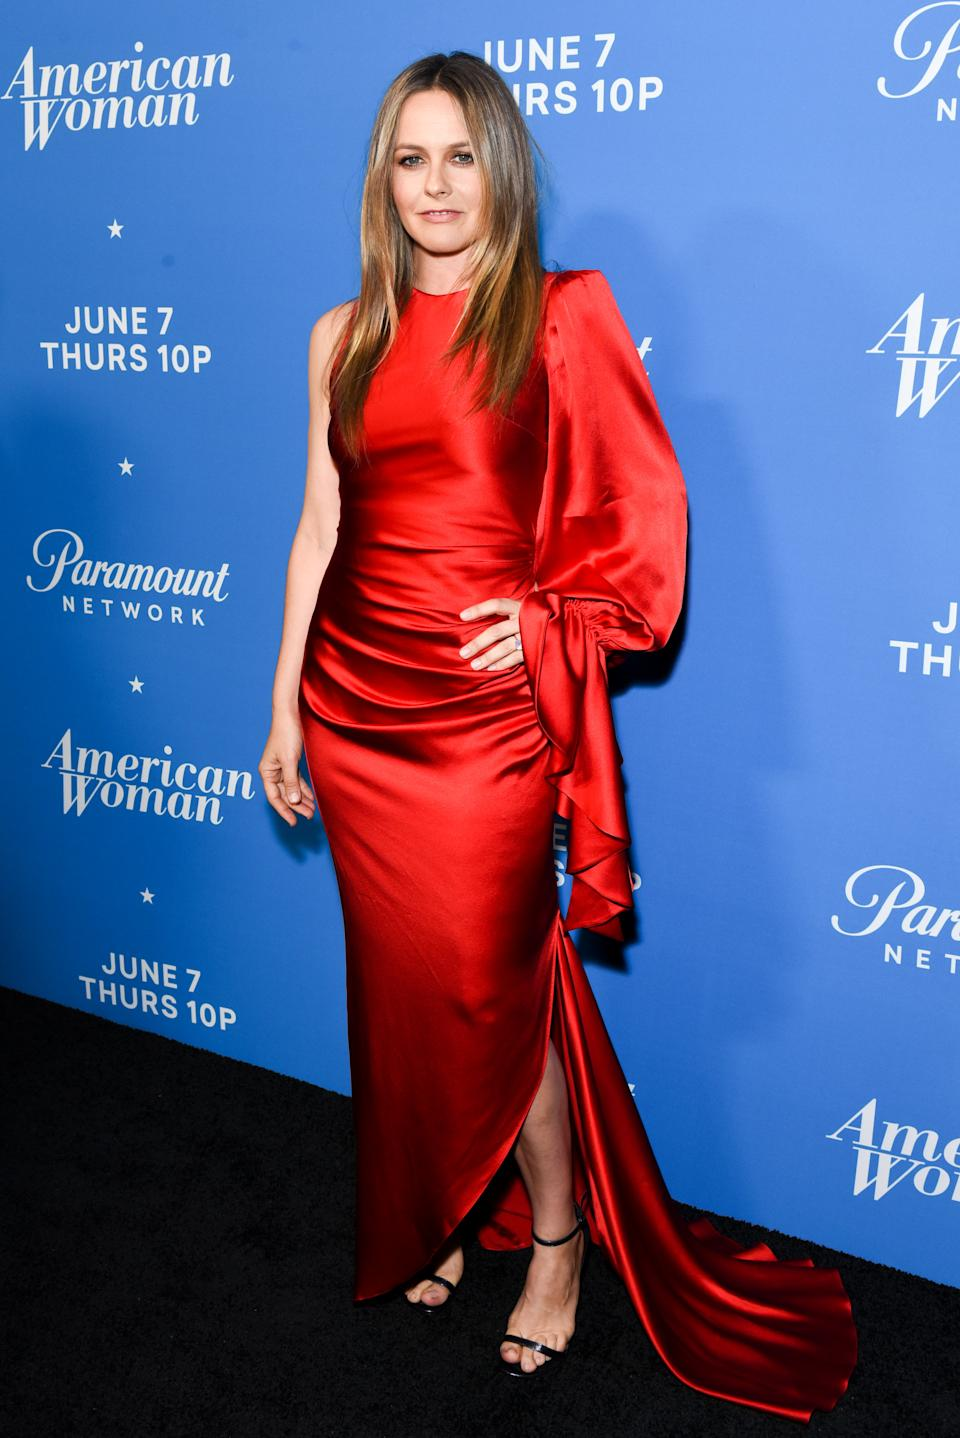 "LOS ANGELES, CA - MAY 31: Alicia Silverstone attends Premiere Of Paramount Network's ""American Woman"" - Arrivals at Chateau Marmont on May 31, 2018 in Los Angeles, California. (Photo by Presley Ann/Getty Images)"